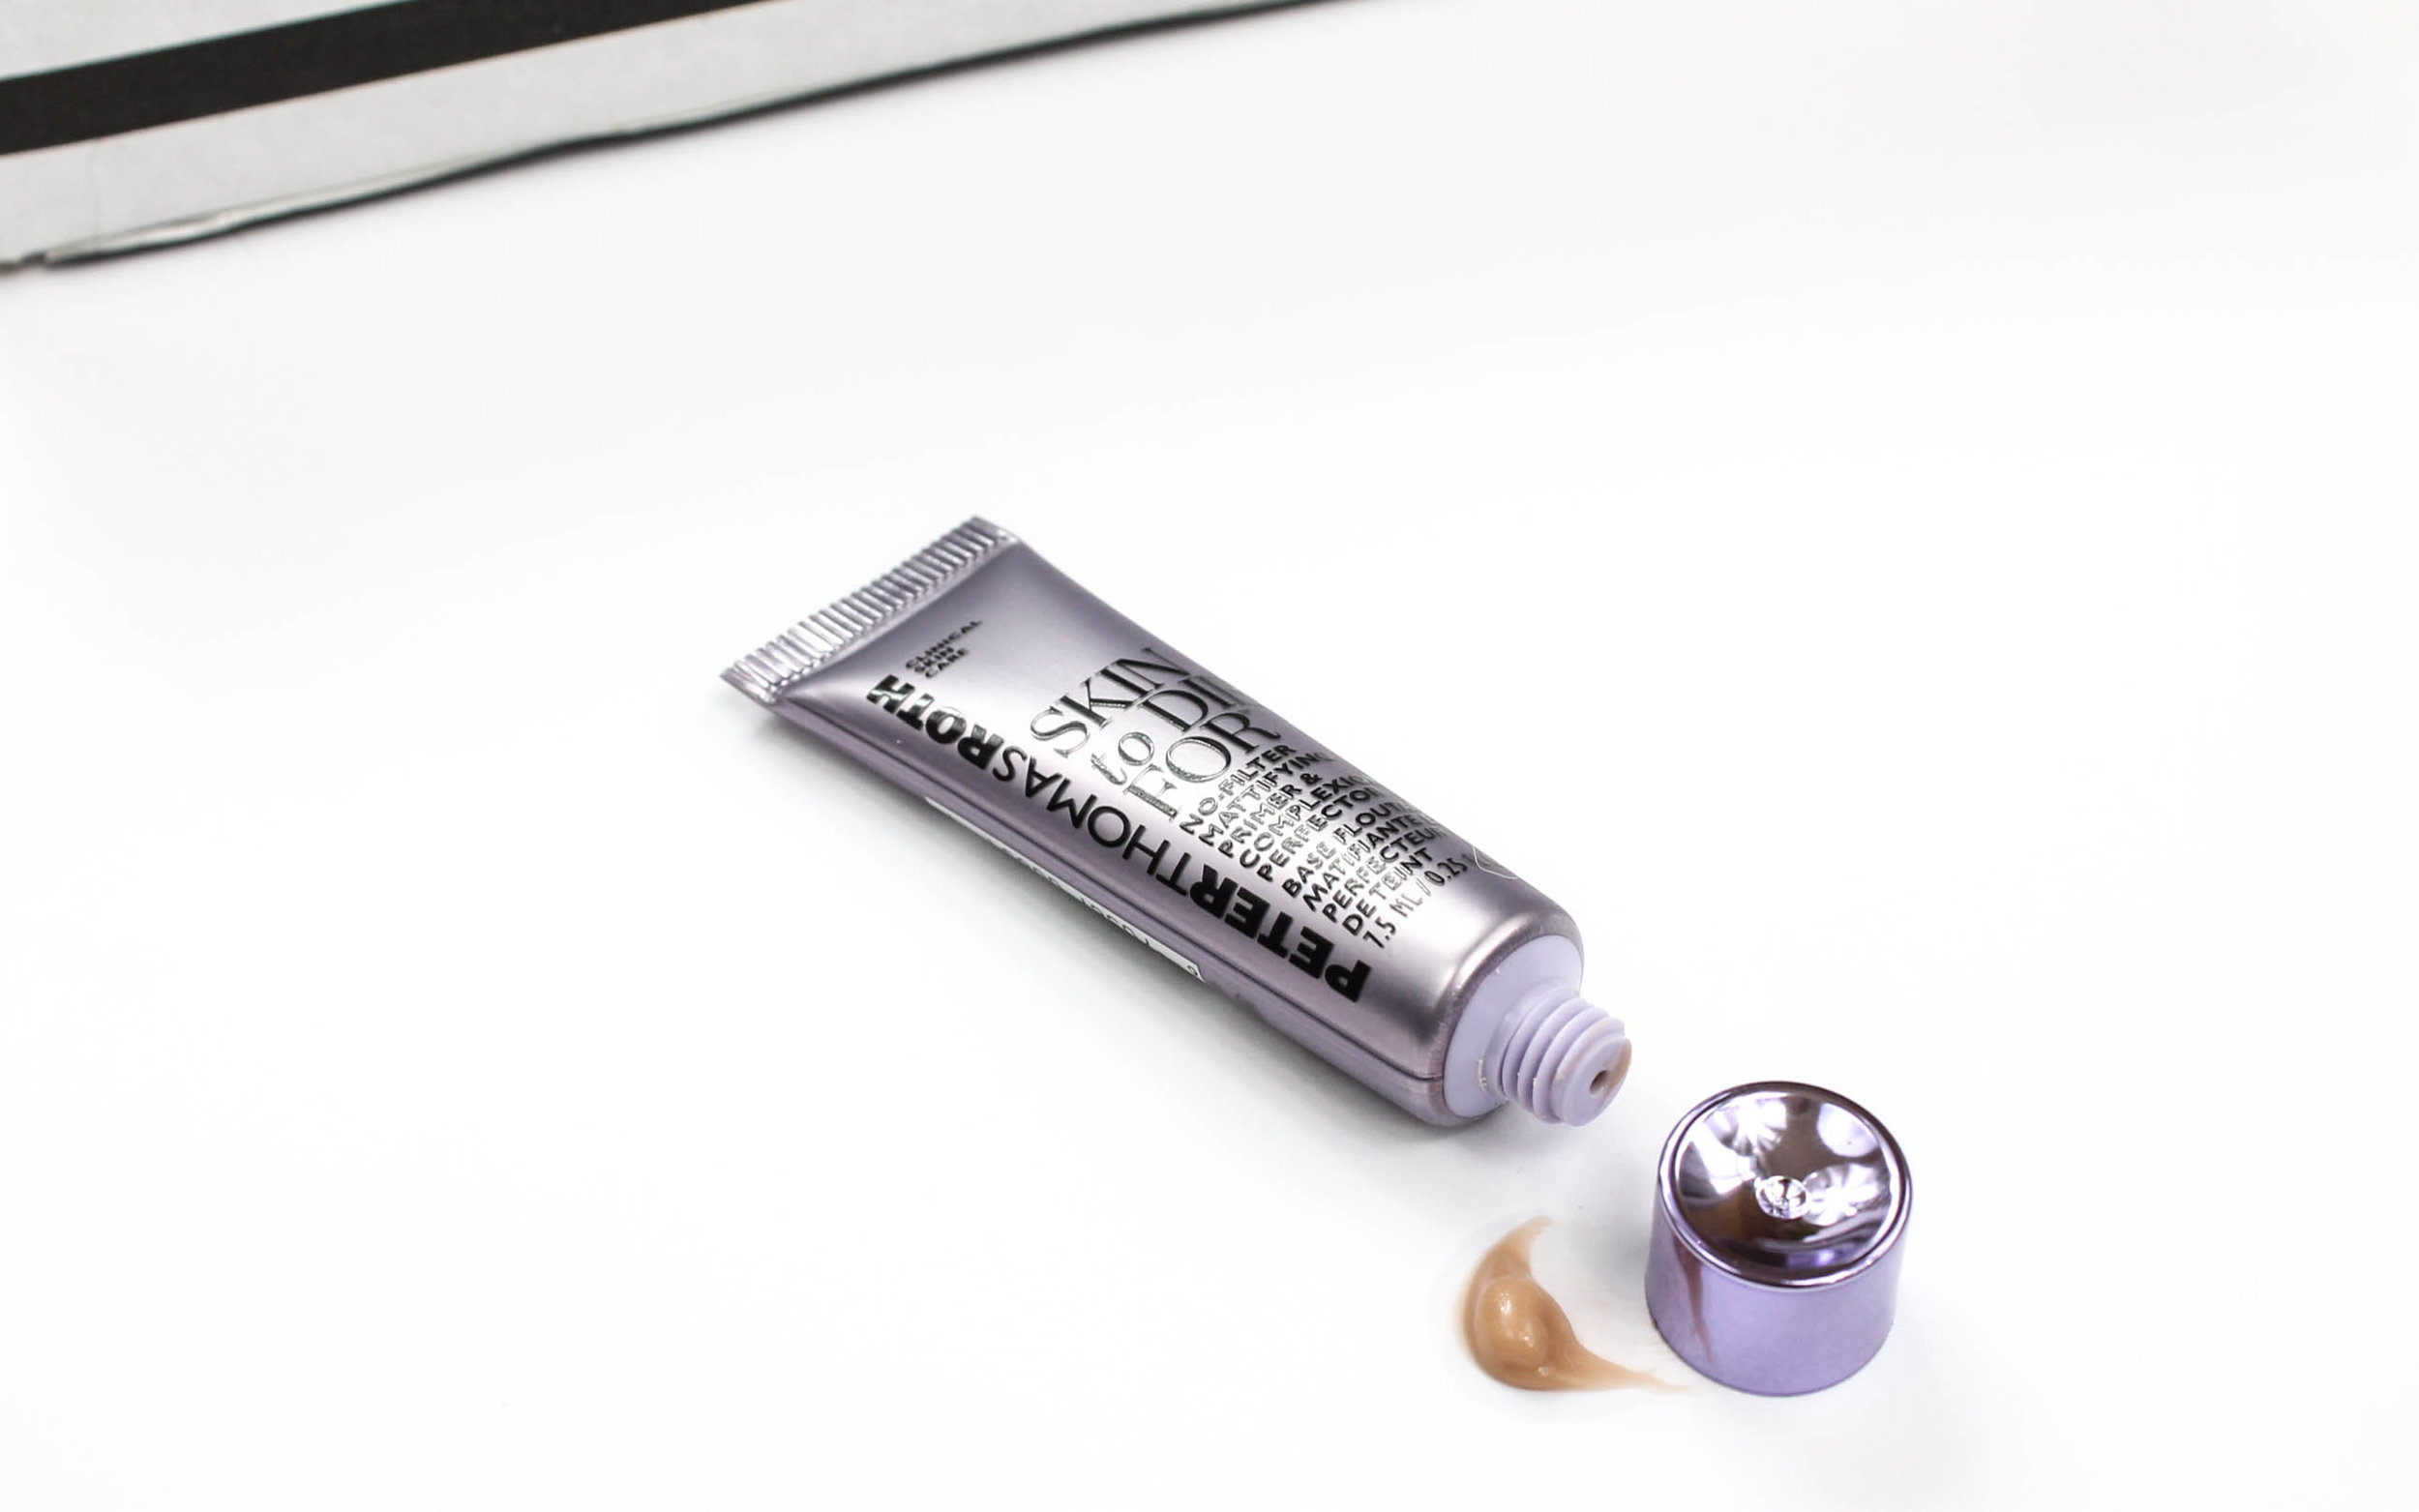 peter thomas roth skin to die for magnifying primer and complexion perfector